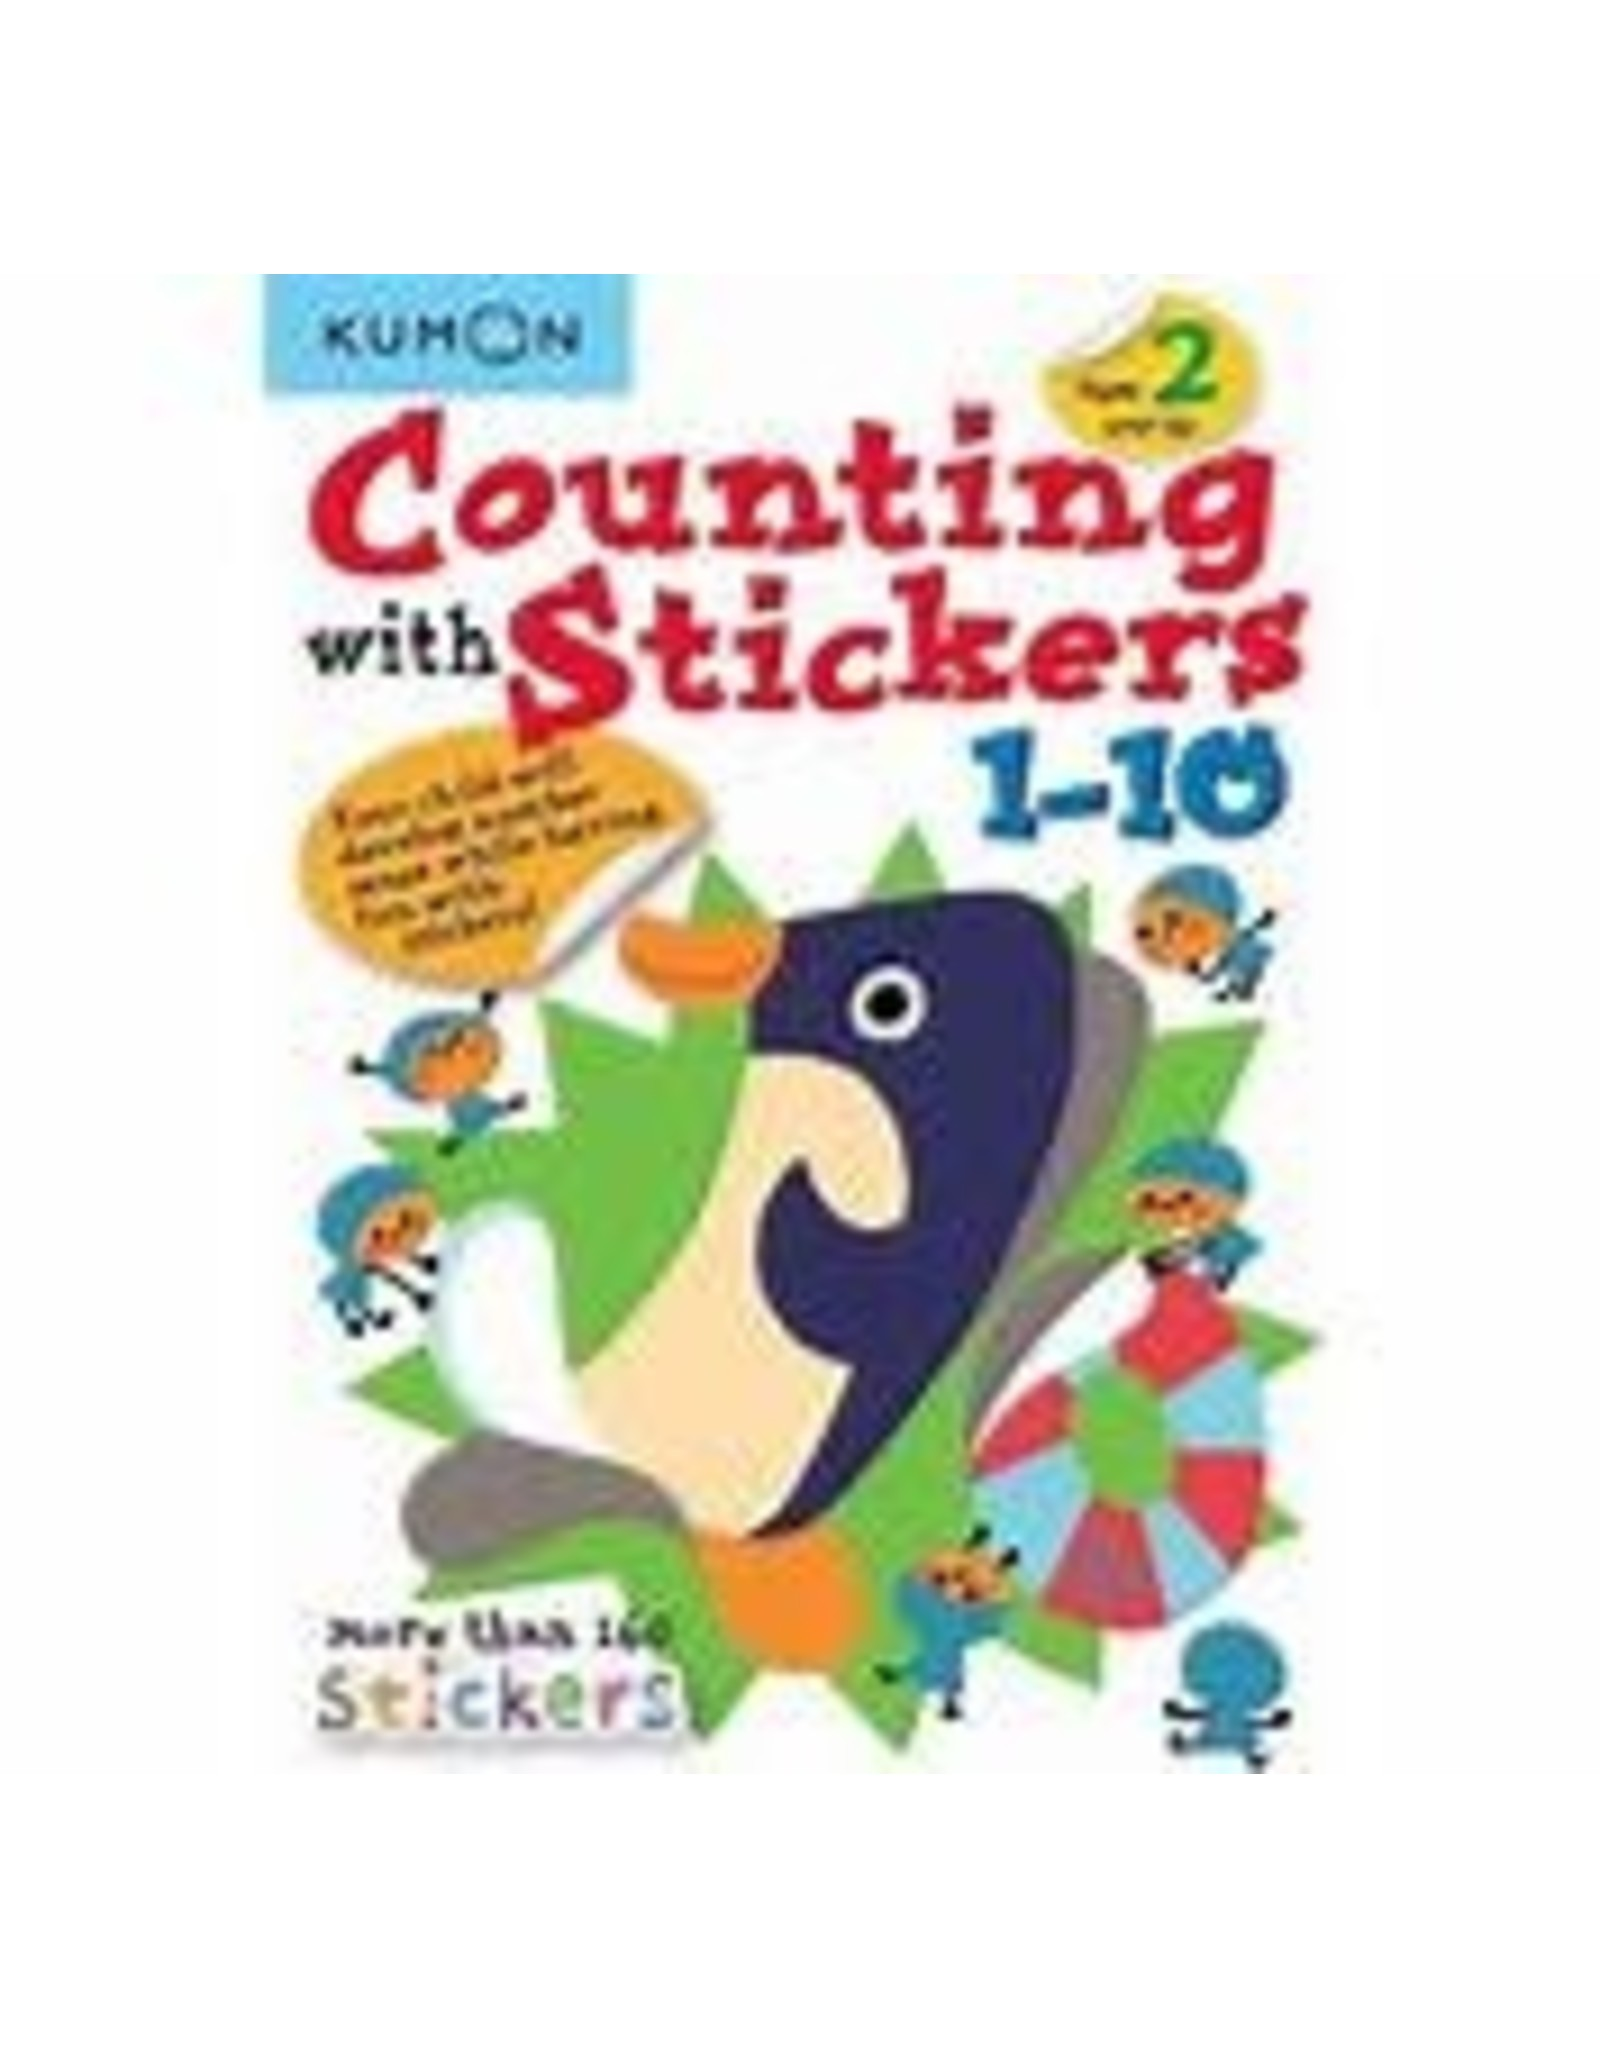 Kumon Counting with Stickers 1-10